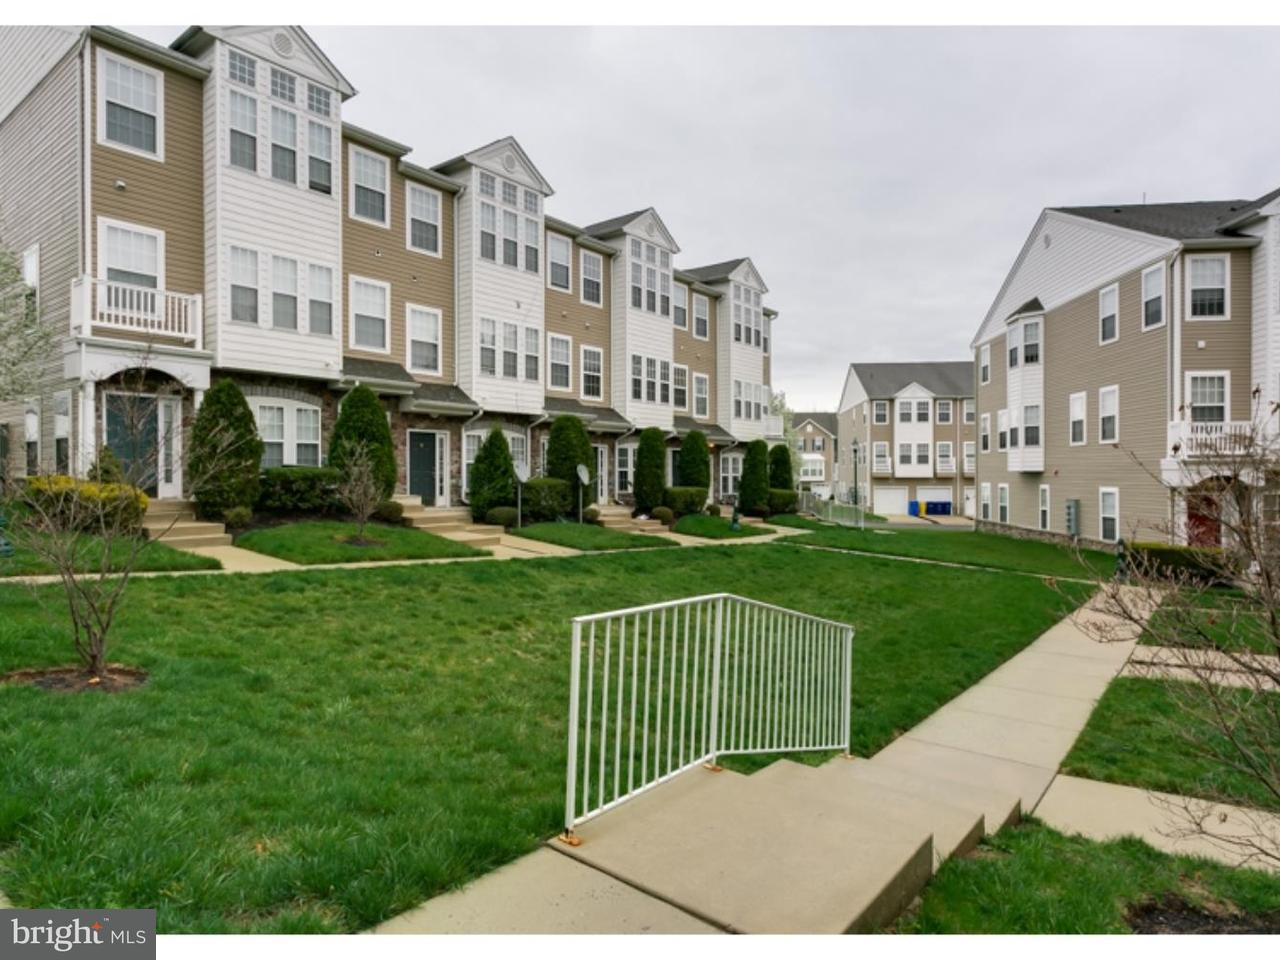 Townhouse for Sale at 8 TEAL Court Delanco Township, New Jersey 08075 United States